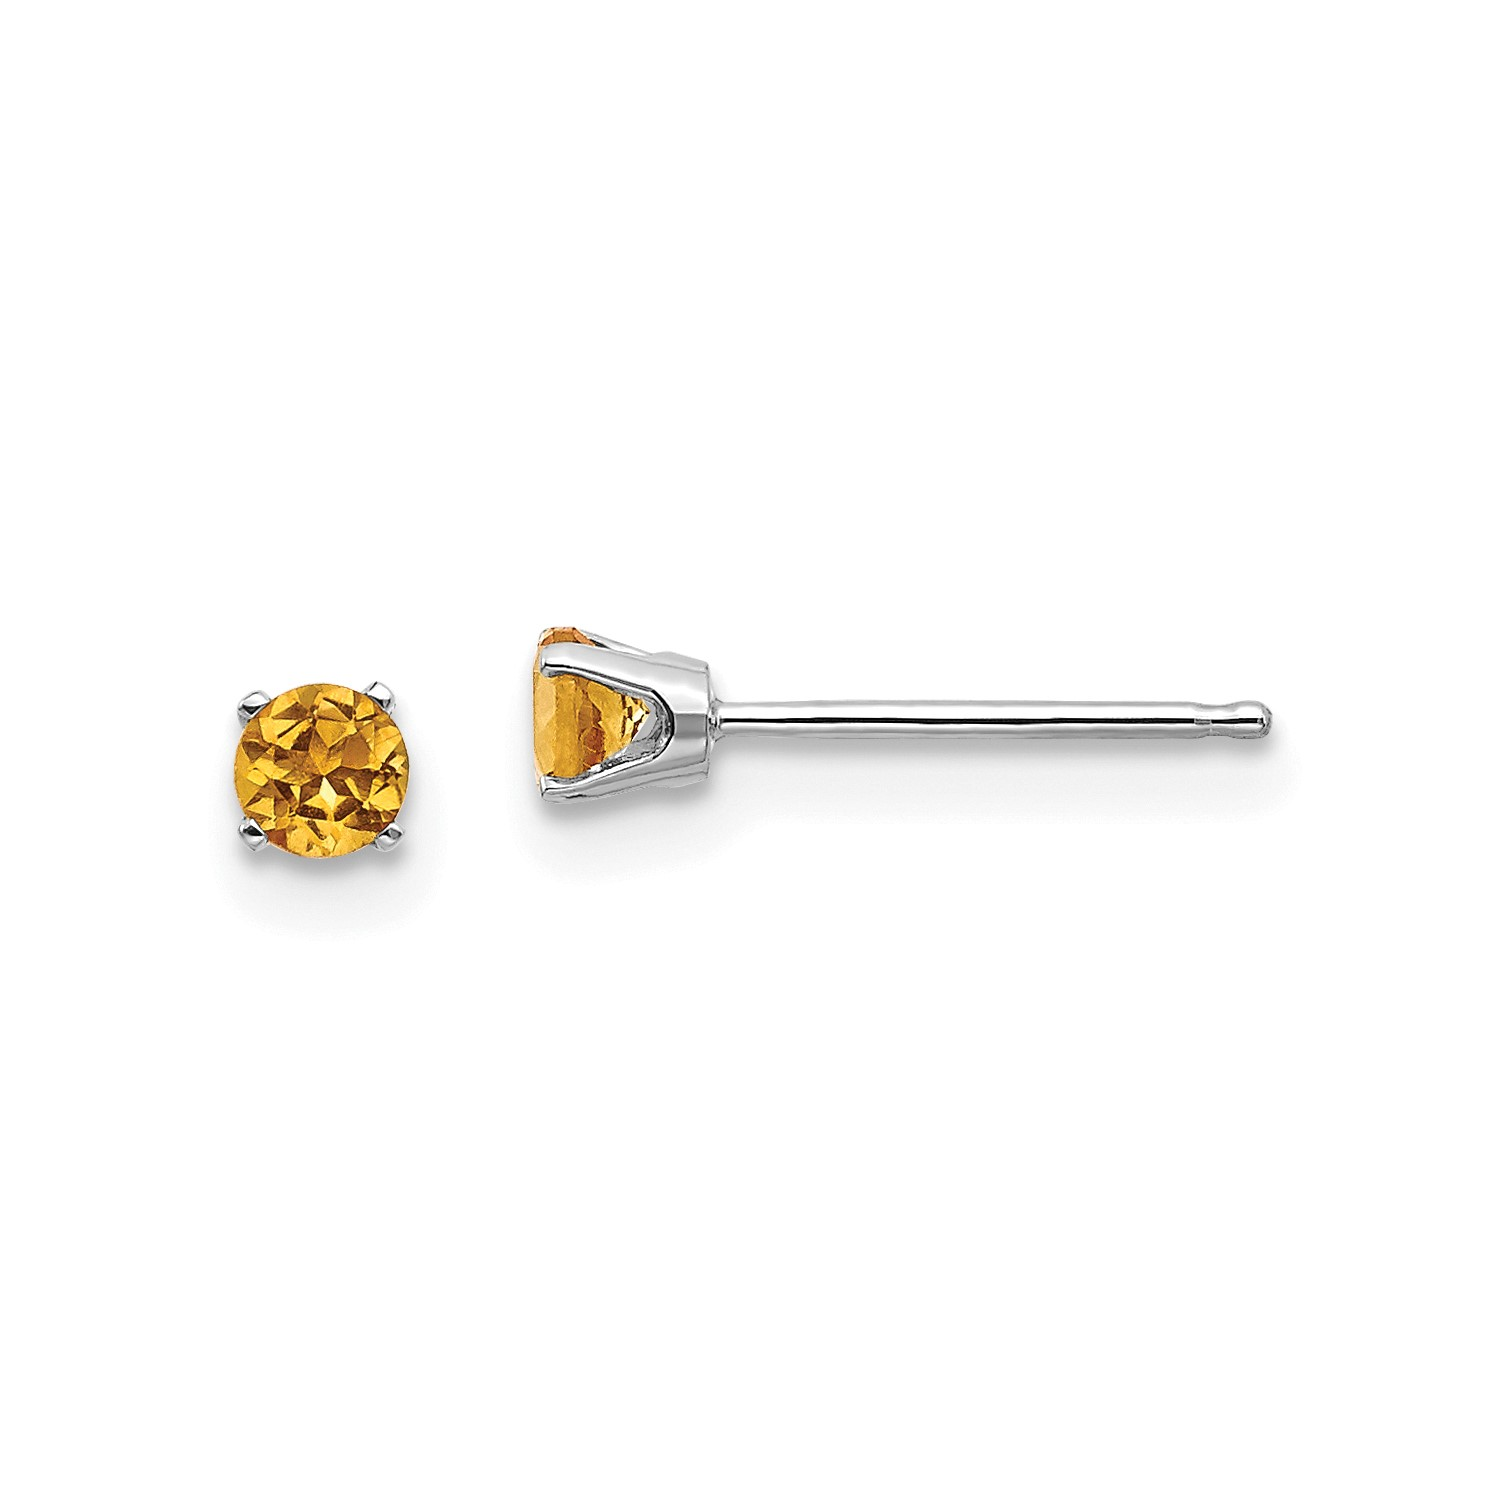 Details About 14k White Gold 3mm Synthetic Citrine Stud Earrings